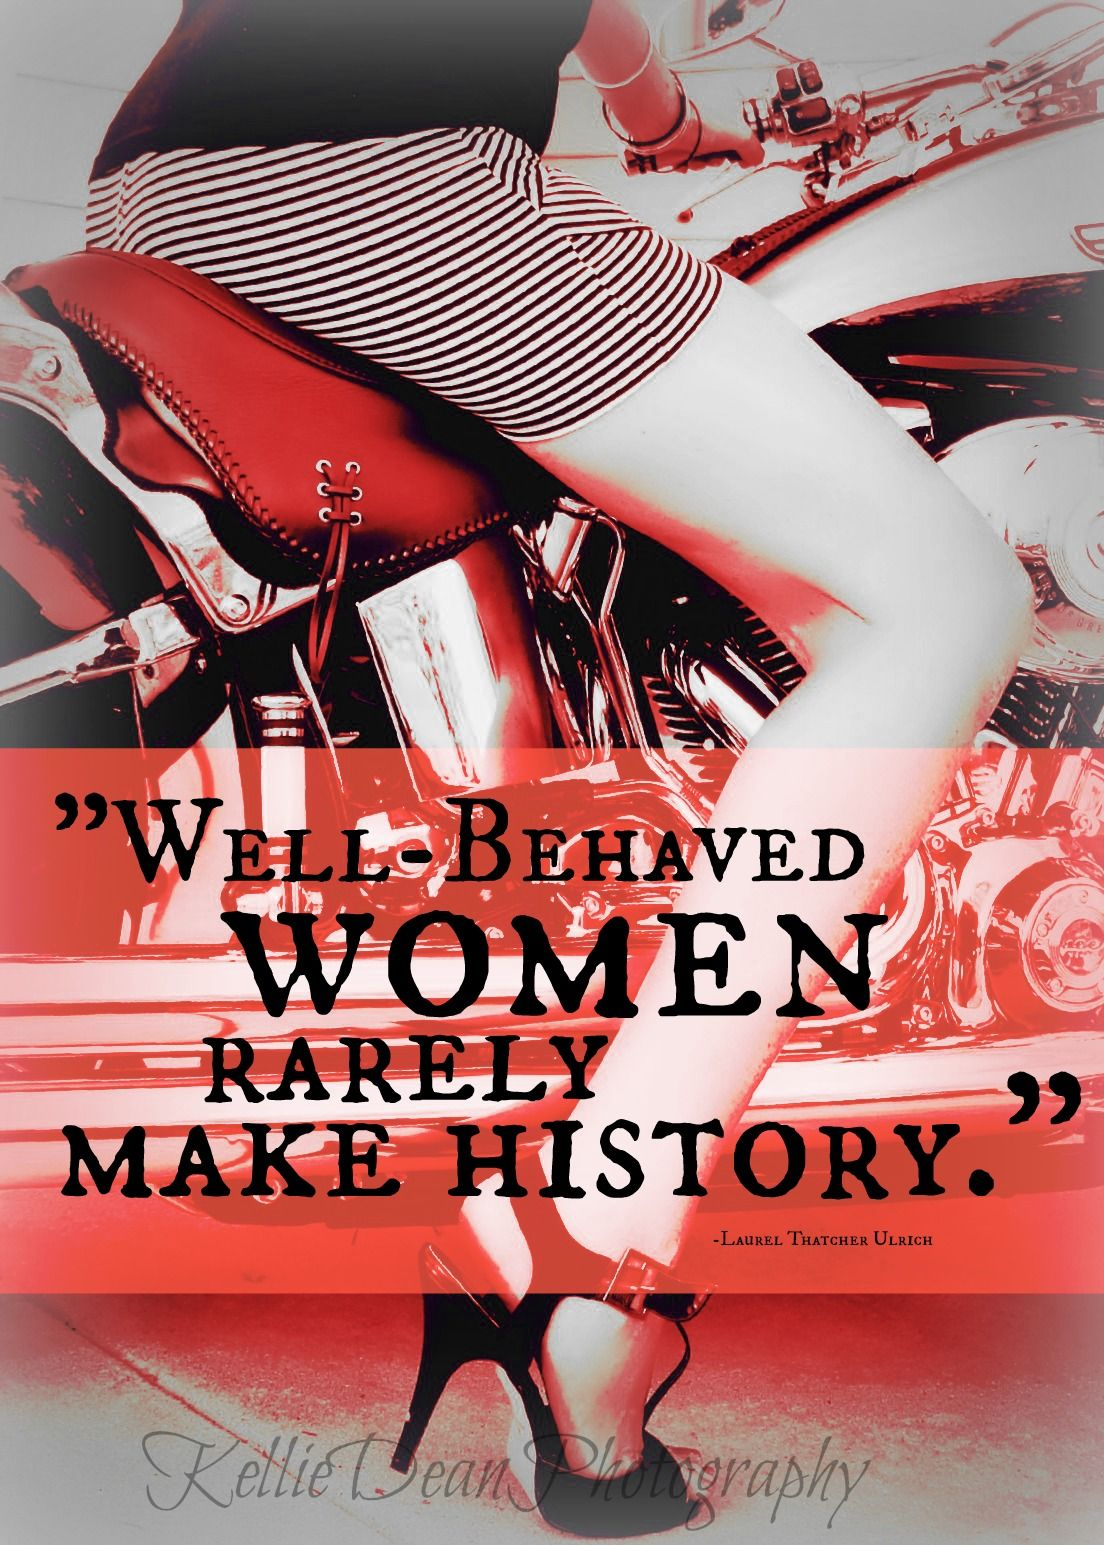 harley, hot momma, sexy, legs, motorcycle, women quote